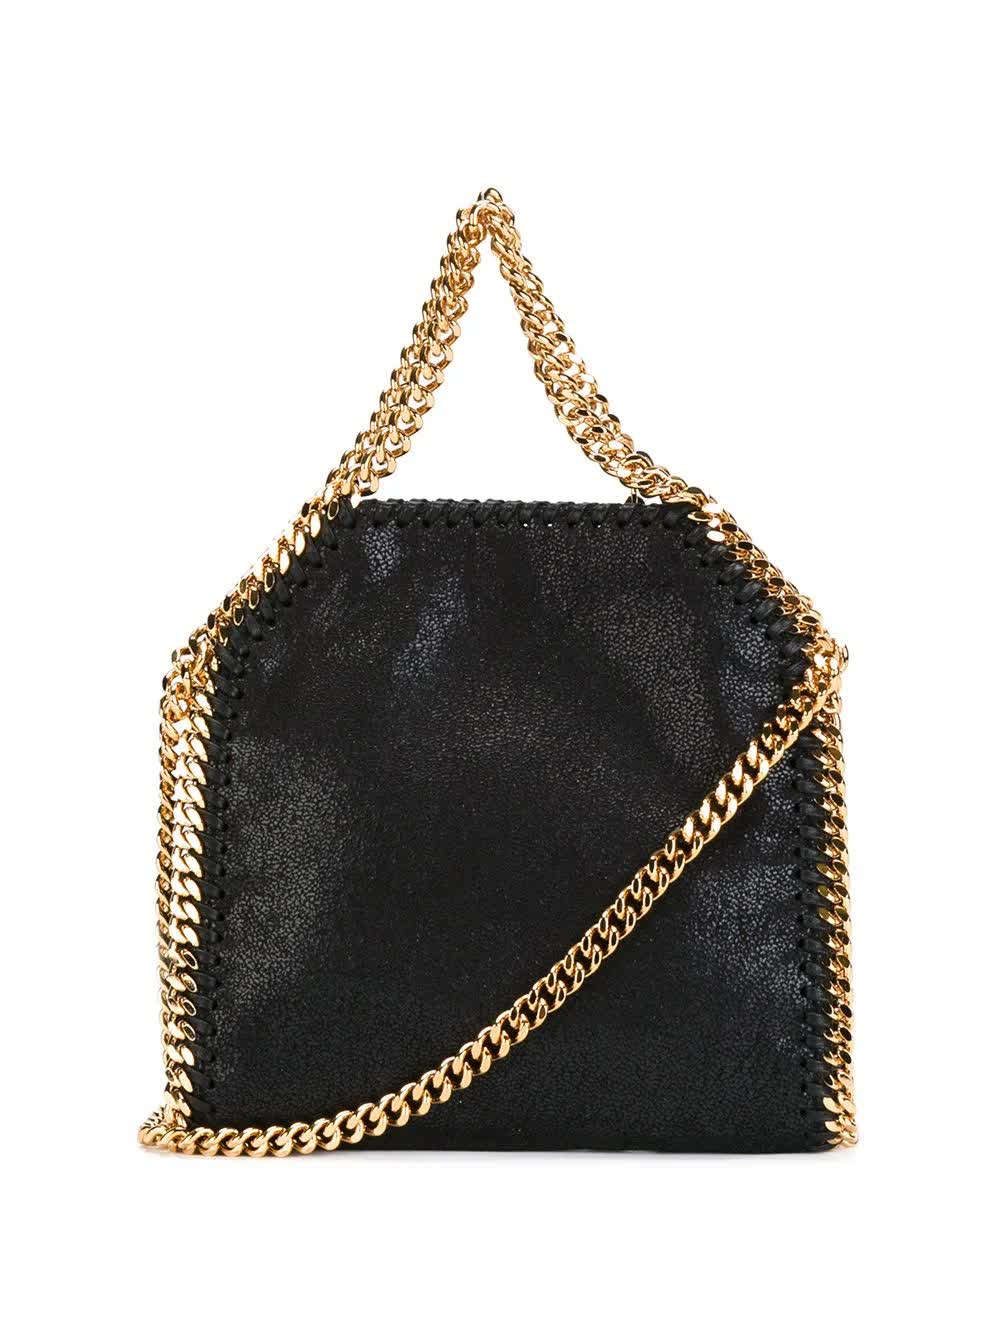 Stella Mccartney BLACK AND GOLD FALABELLA TINY TOTE BAG